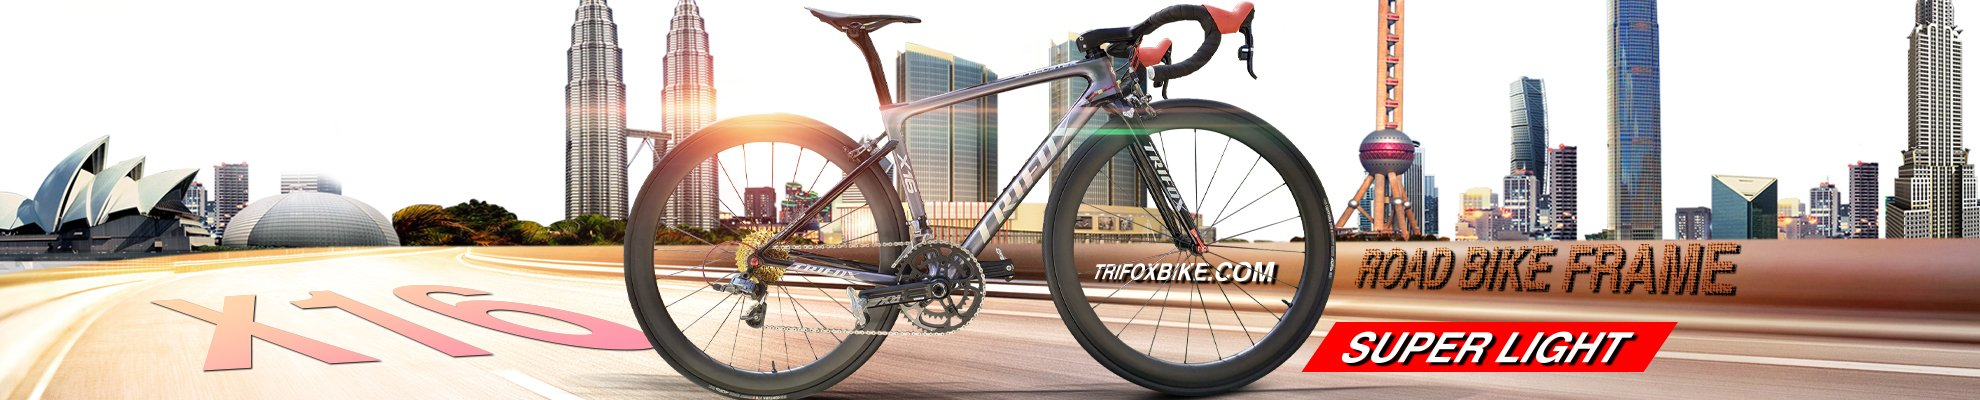 Trifox 700x28C Full Carbon Road Bike Frameset X16 Quick Release